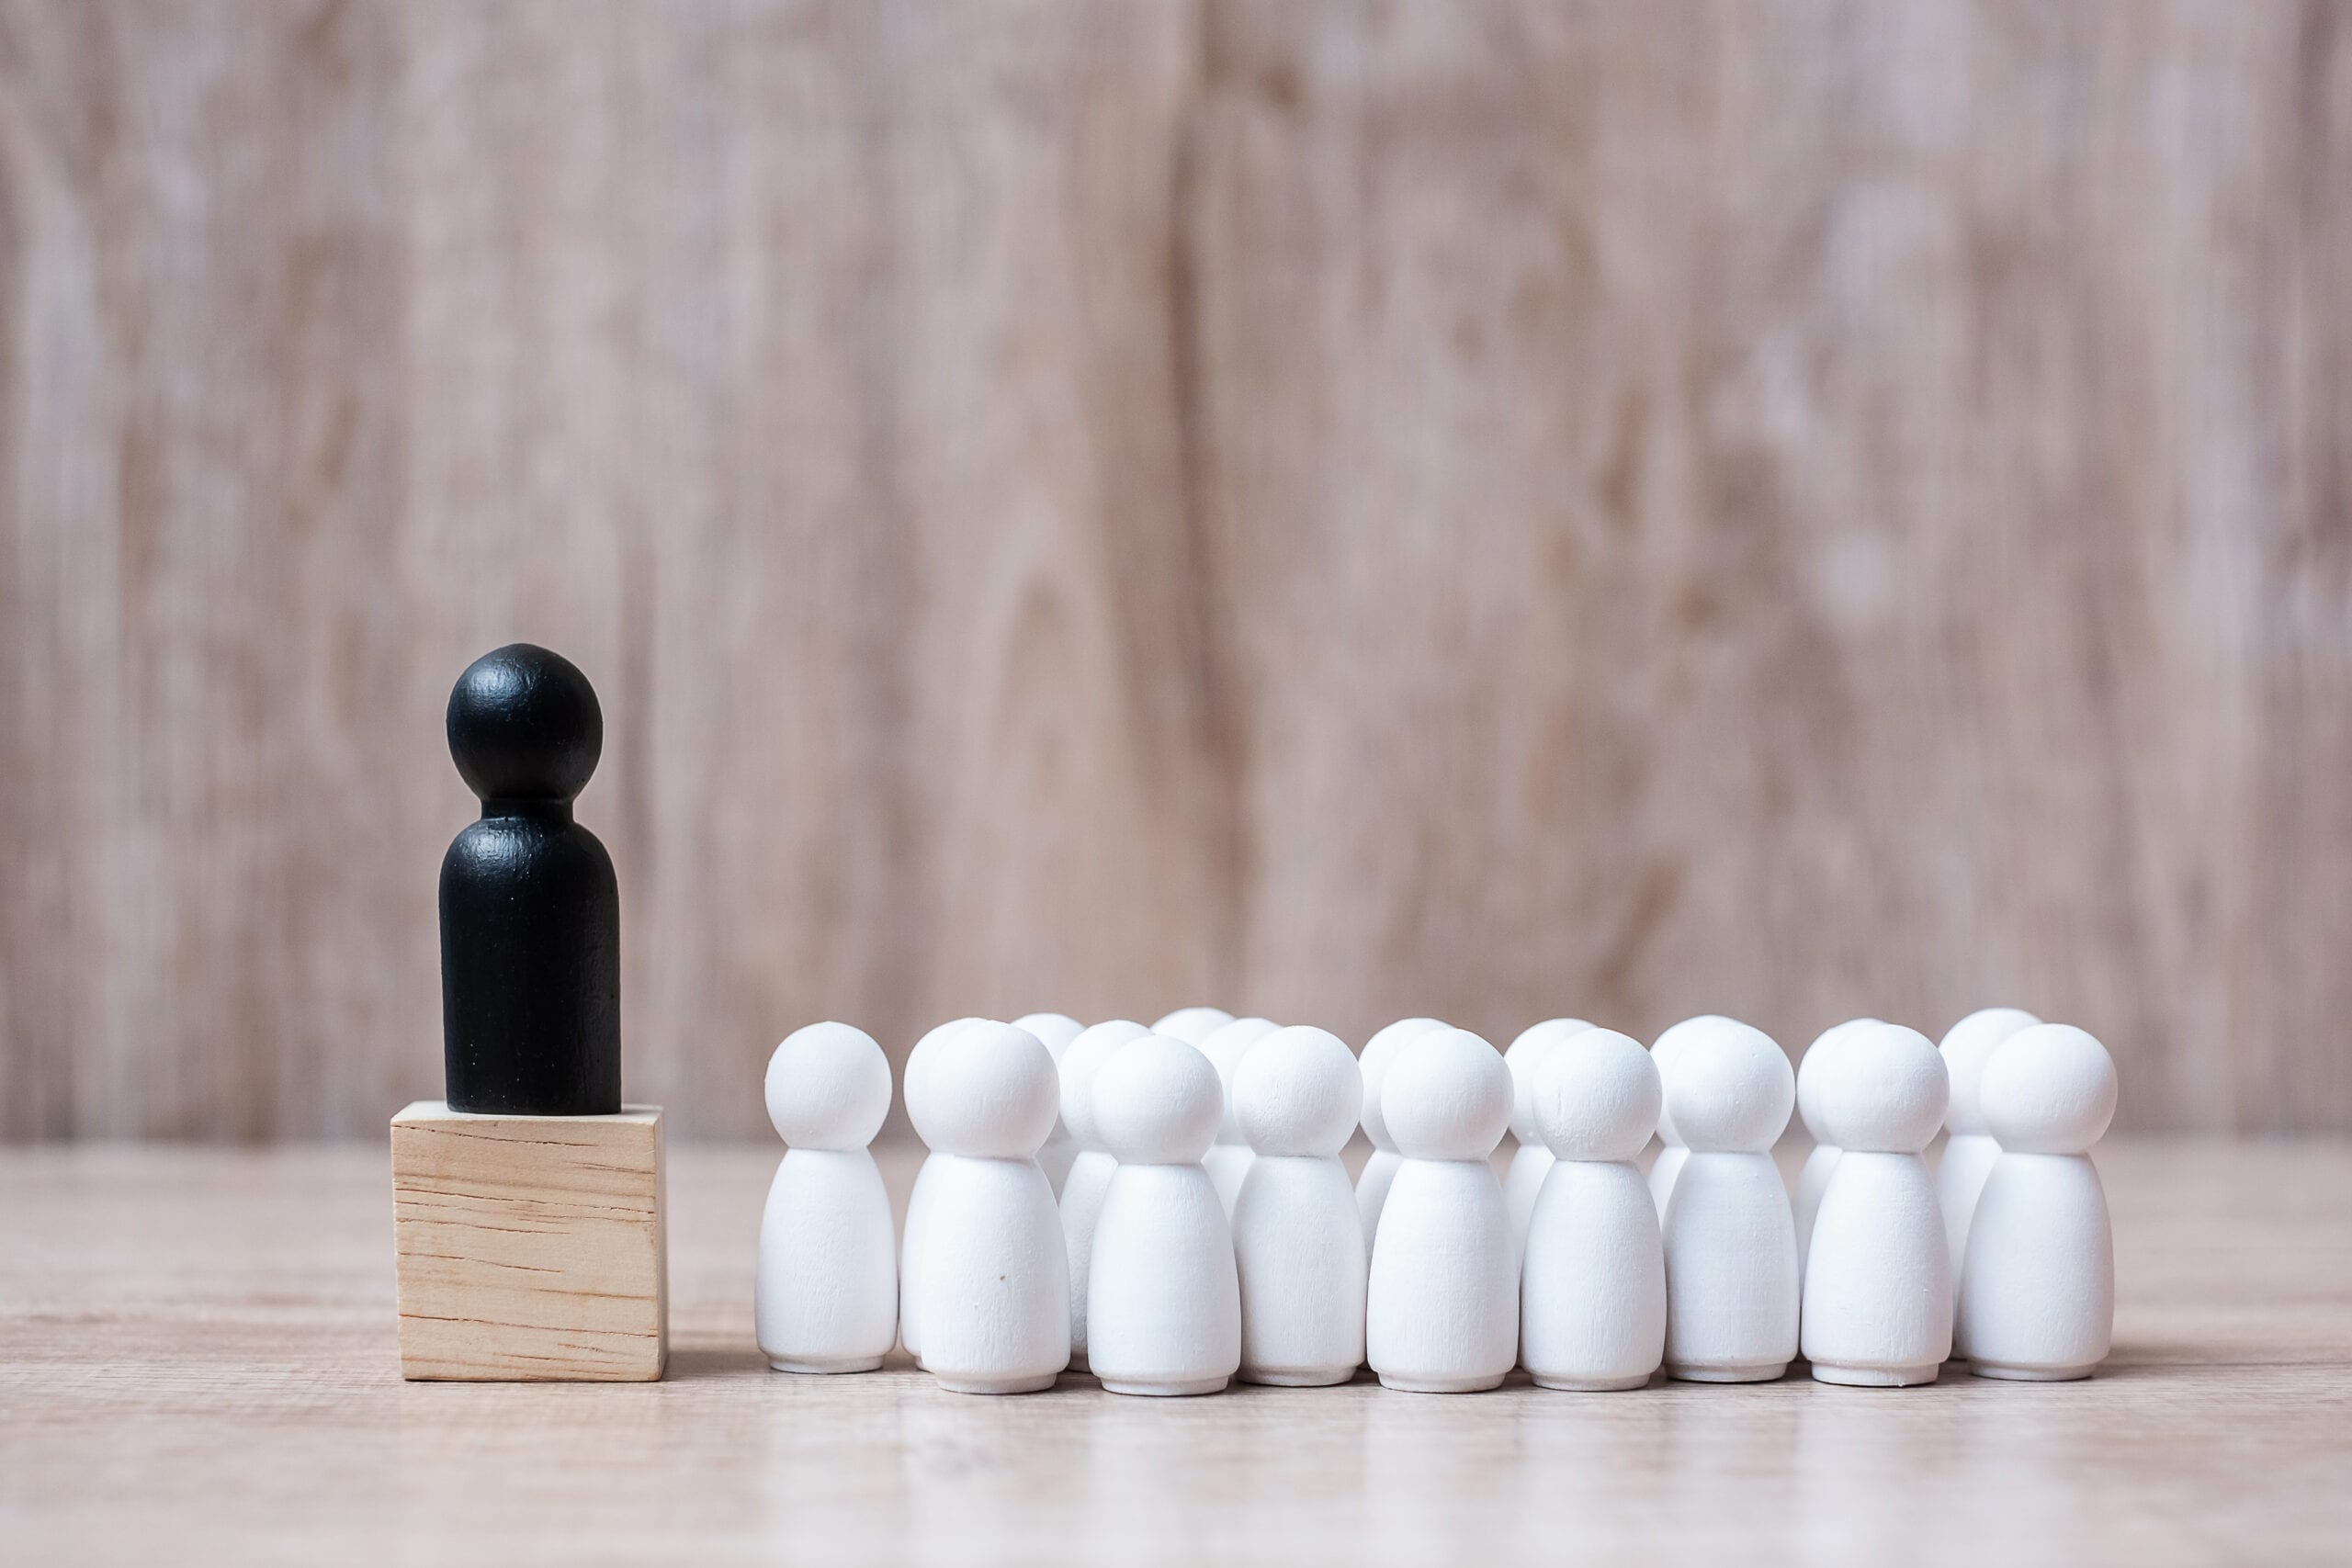 black leader businessman with crowd of wooden employees. leadership, business, team, teamwork and Human resource management concept